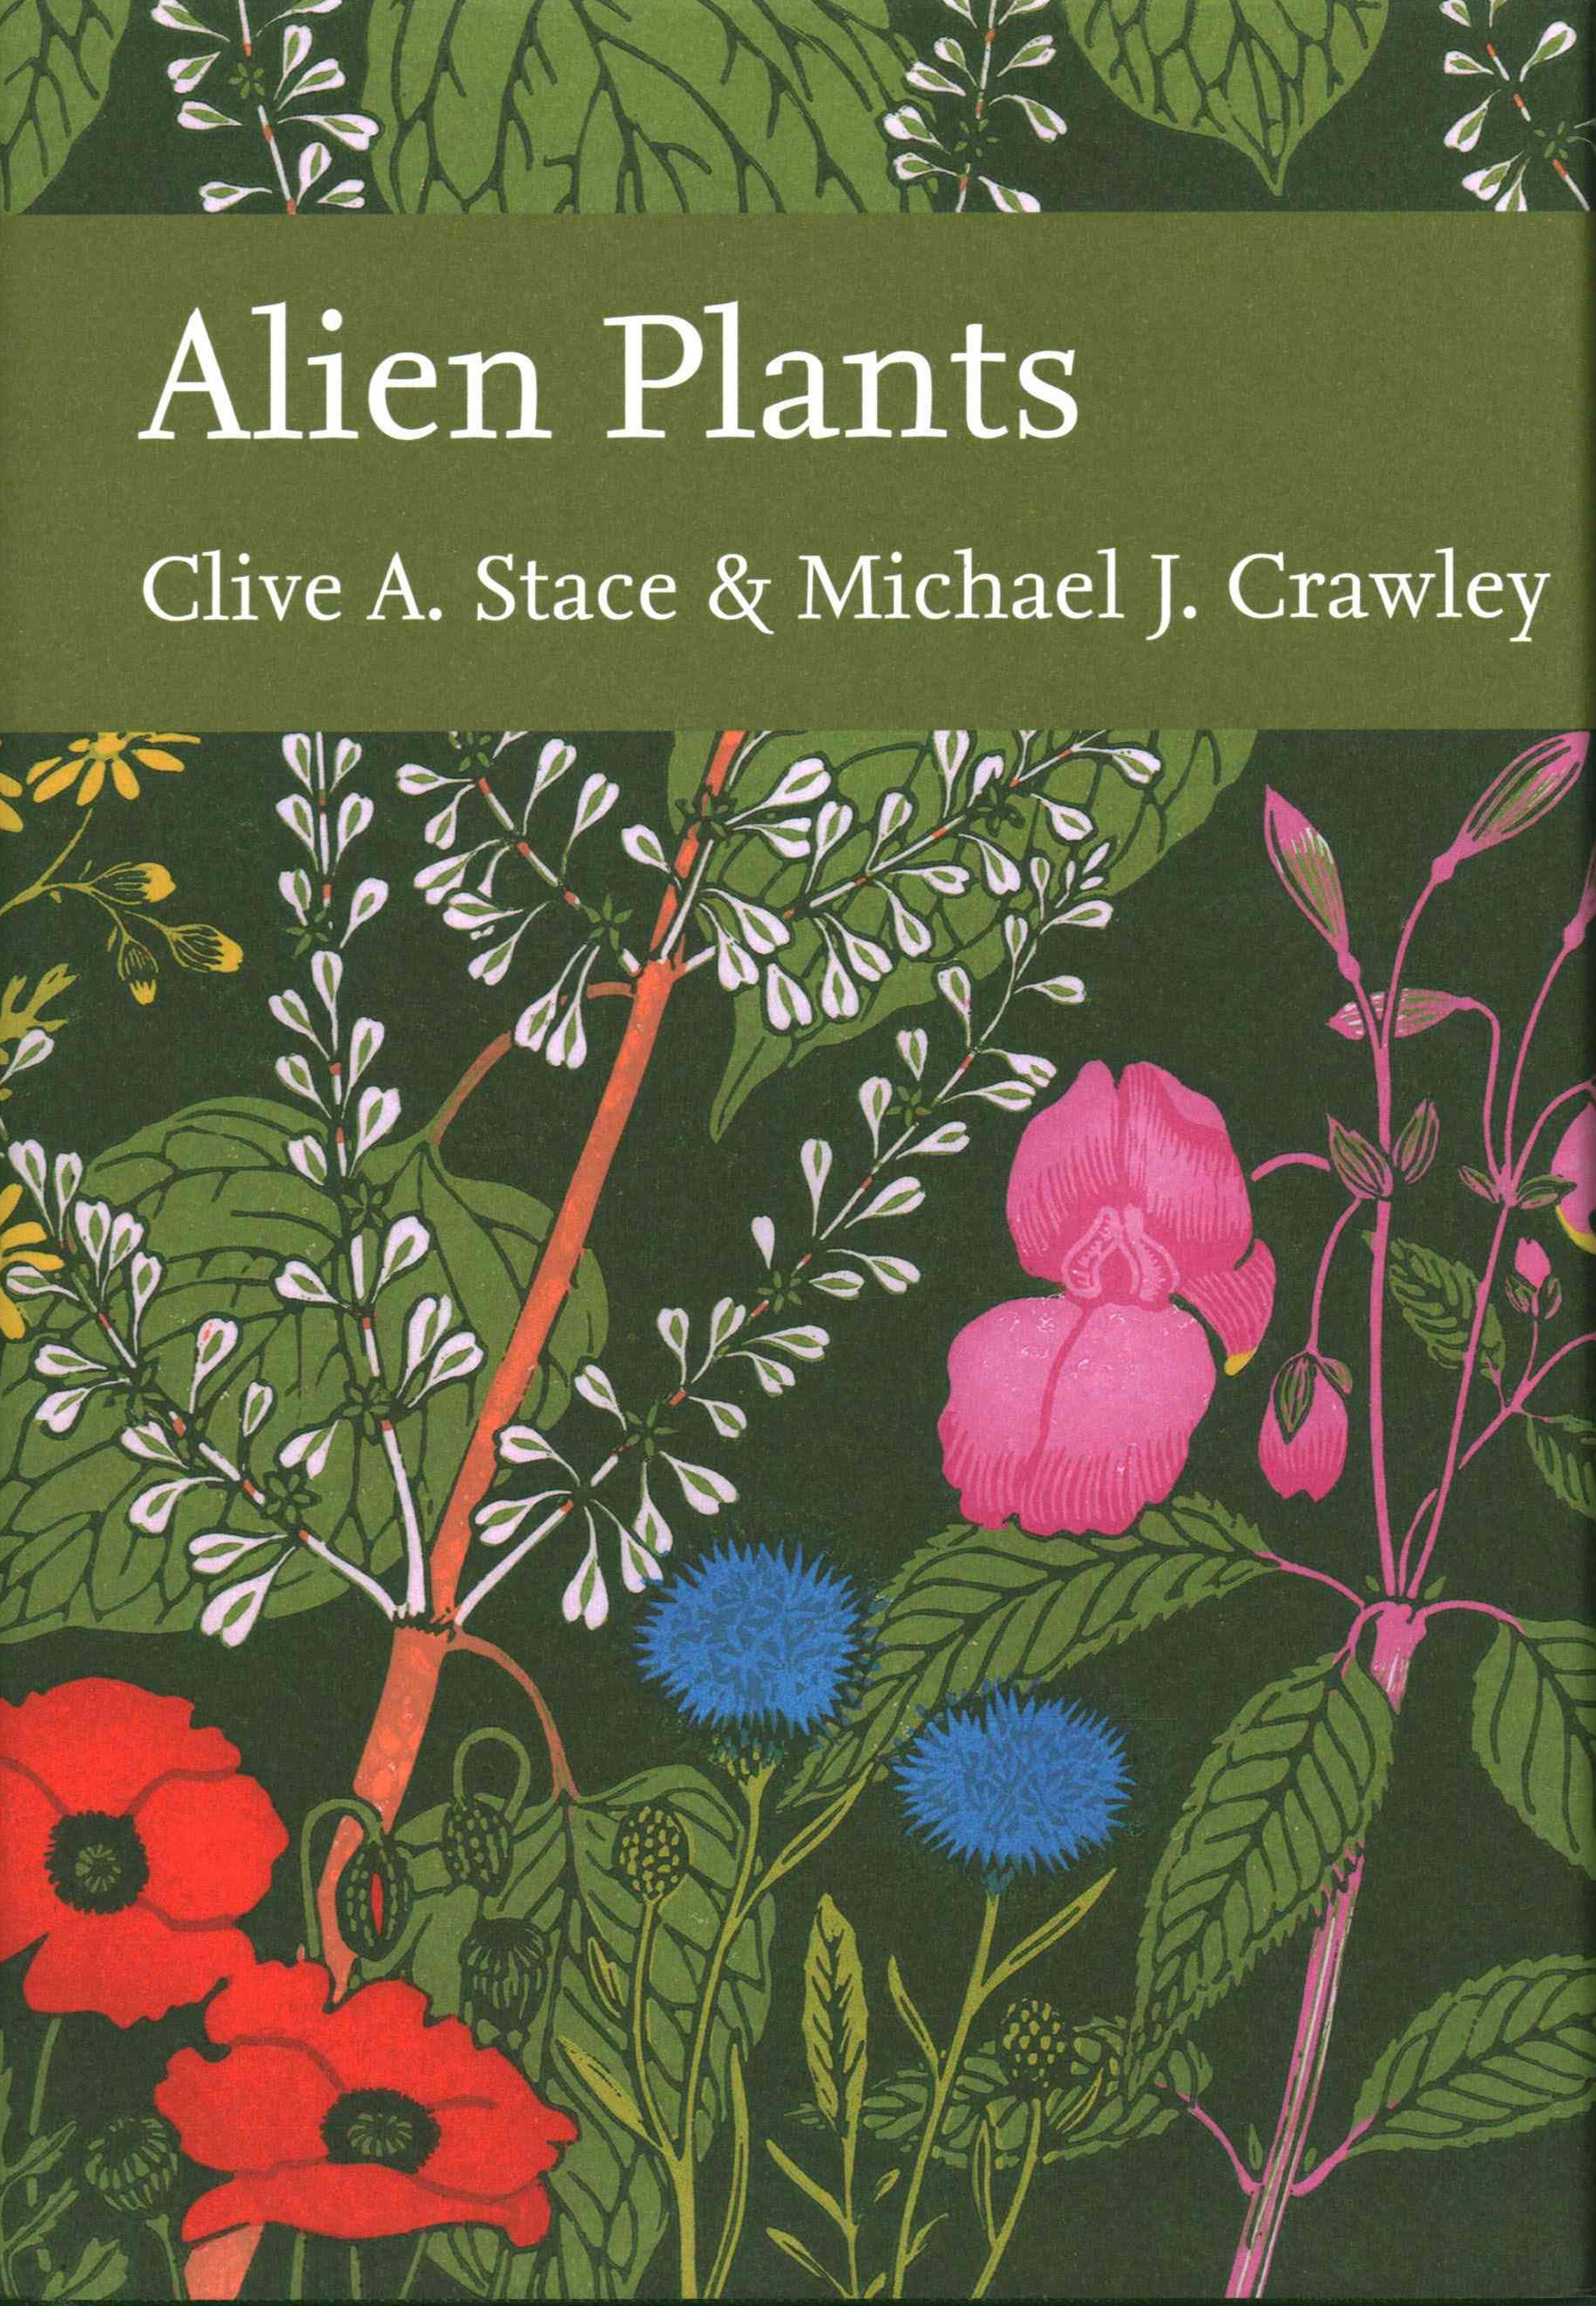 Collins New Naturalist Library (129): Alien Plants